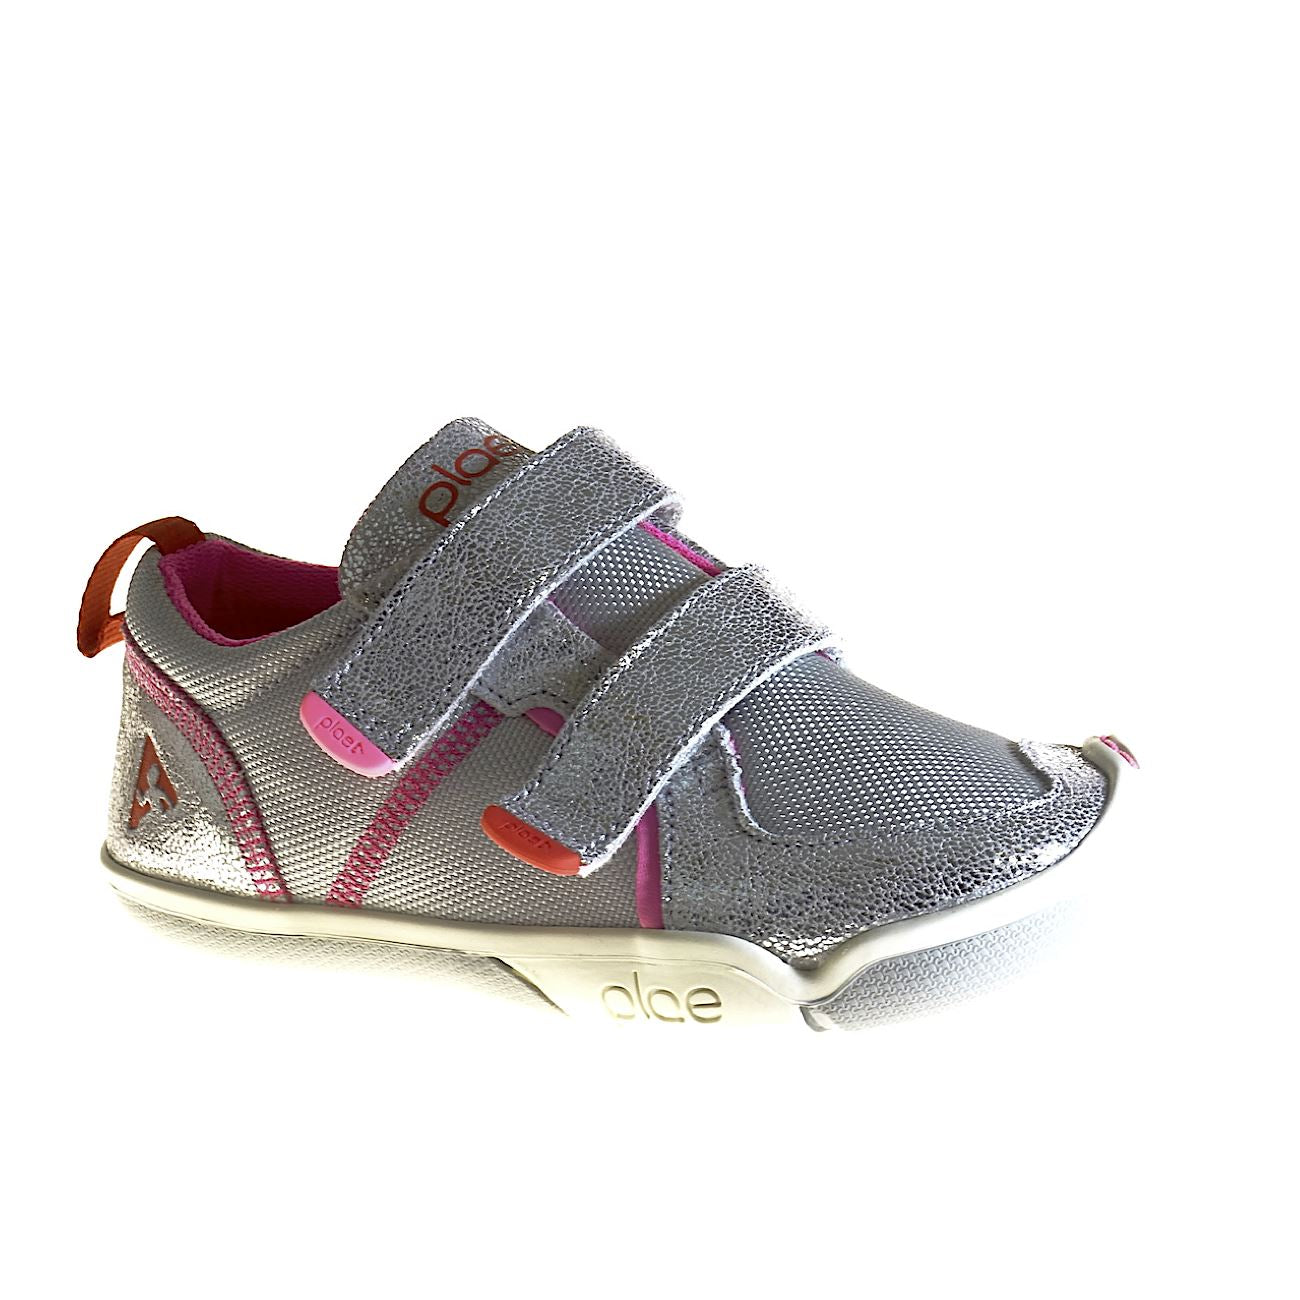 PLAE, Ty, Youth, Sneakers, Metallic Silver Shoes PLAE Metallic Silver y1